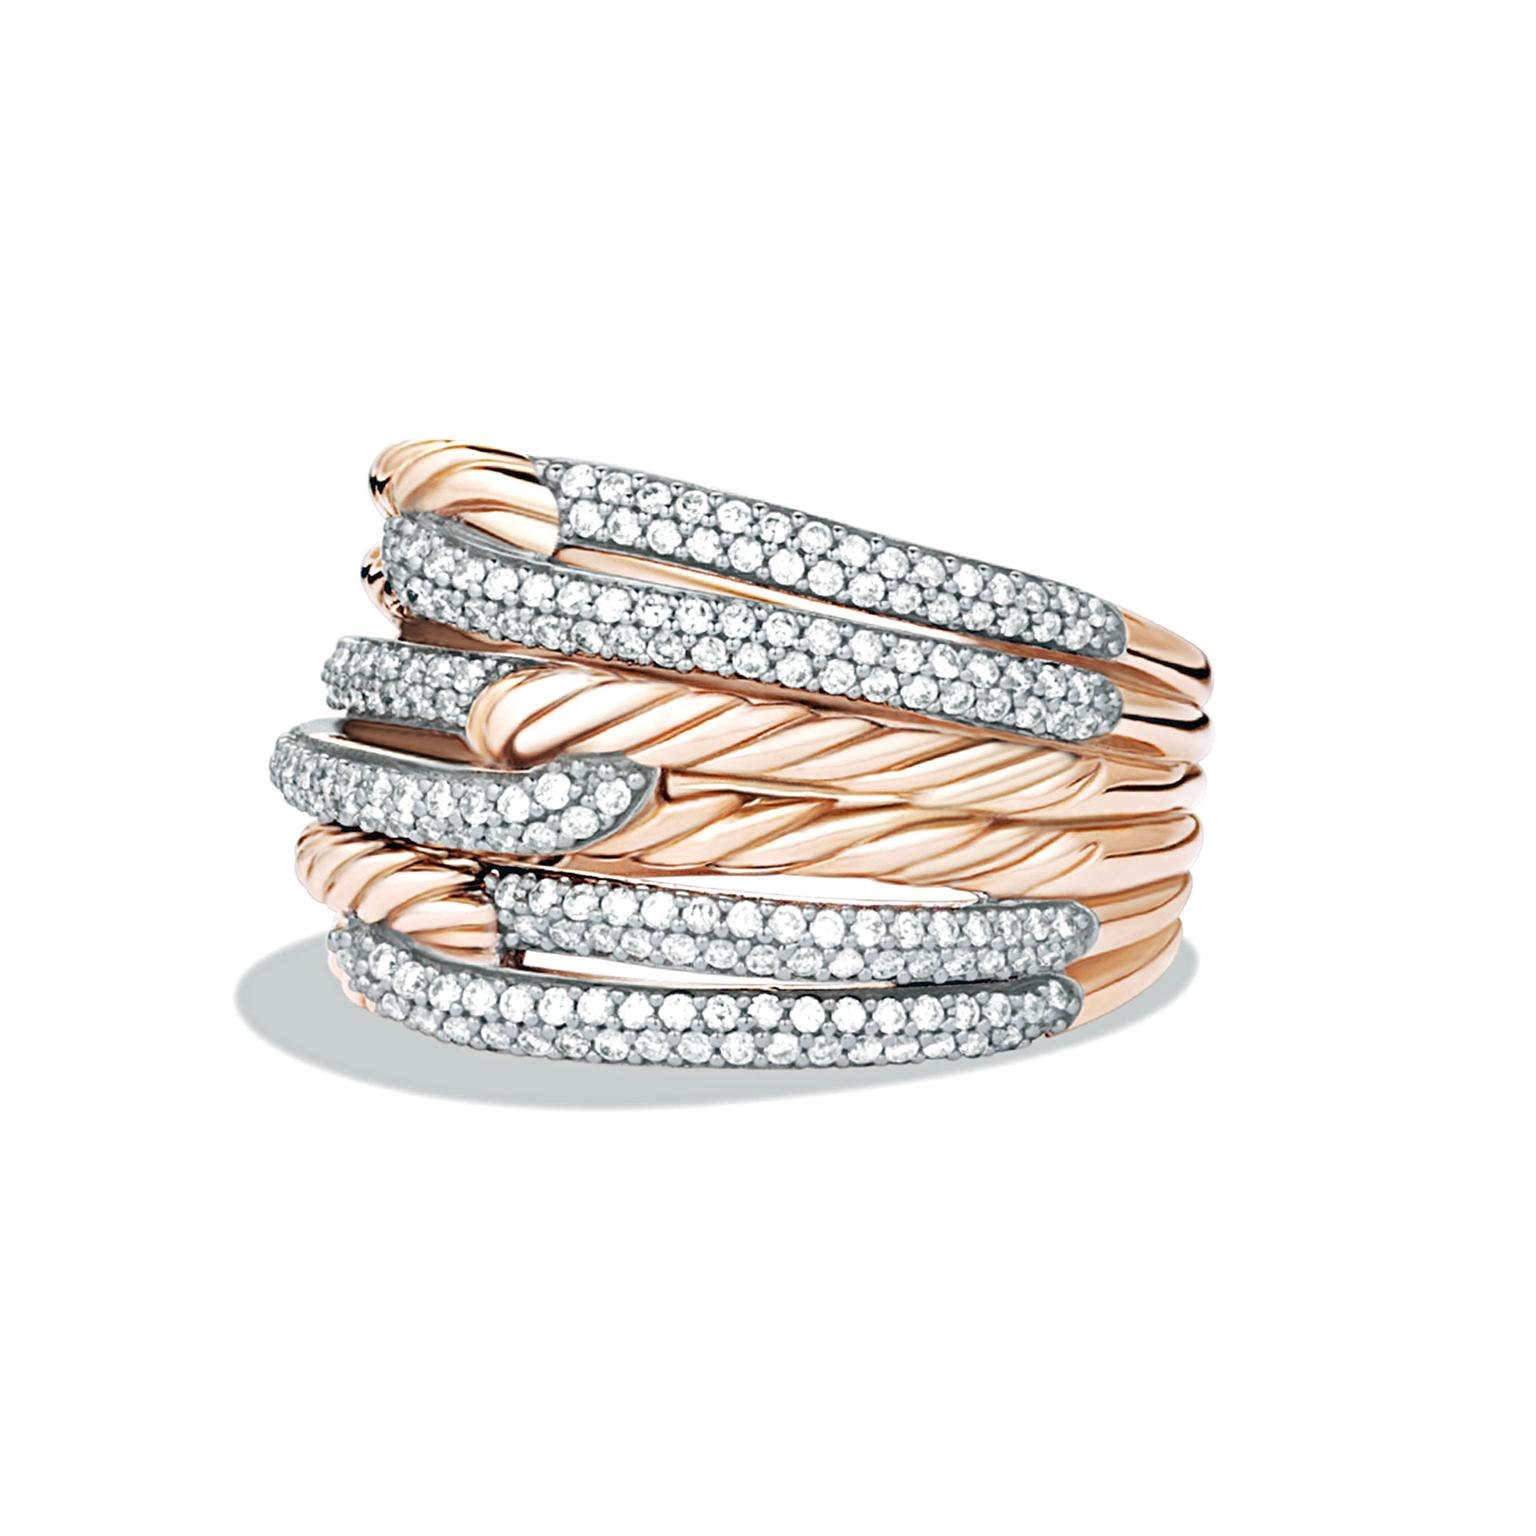 David Yurman triple loop ring in rose gold with diamonds